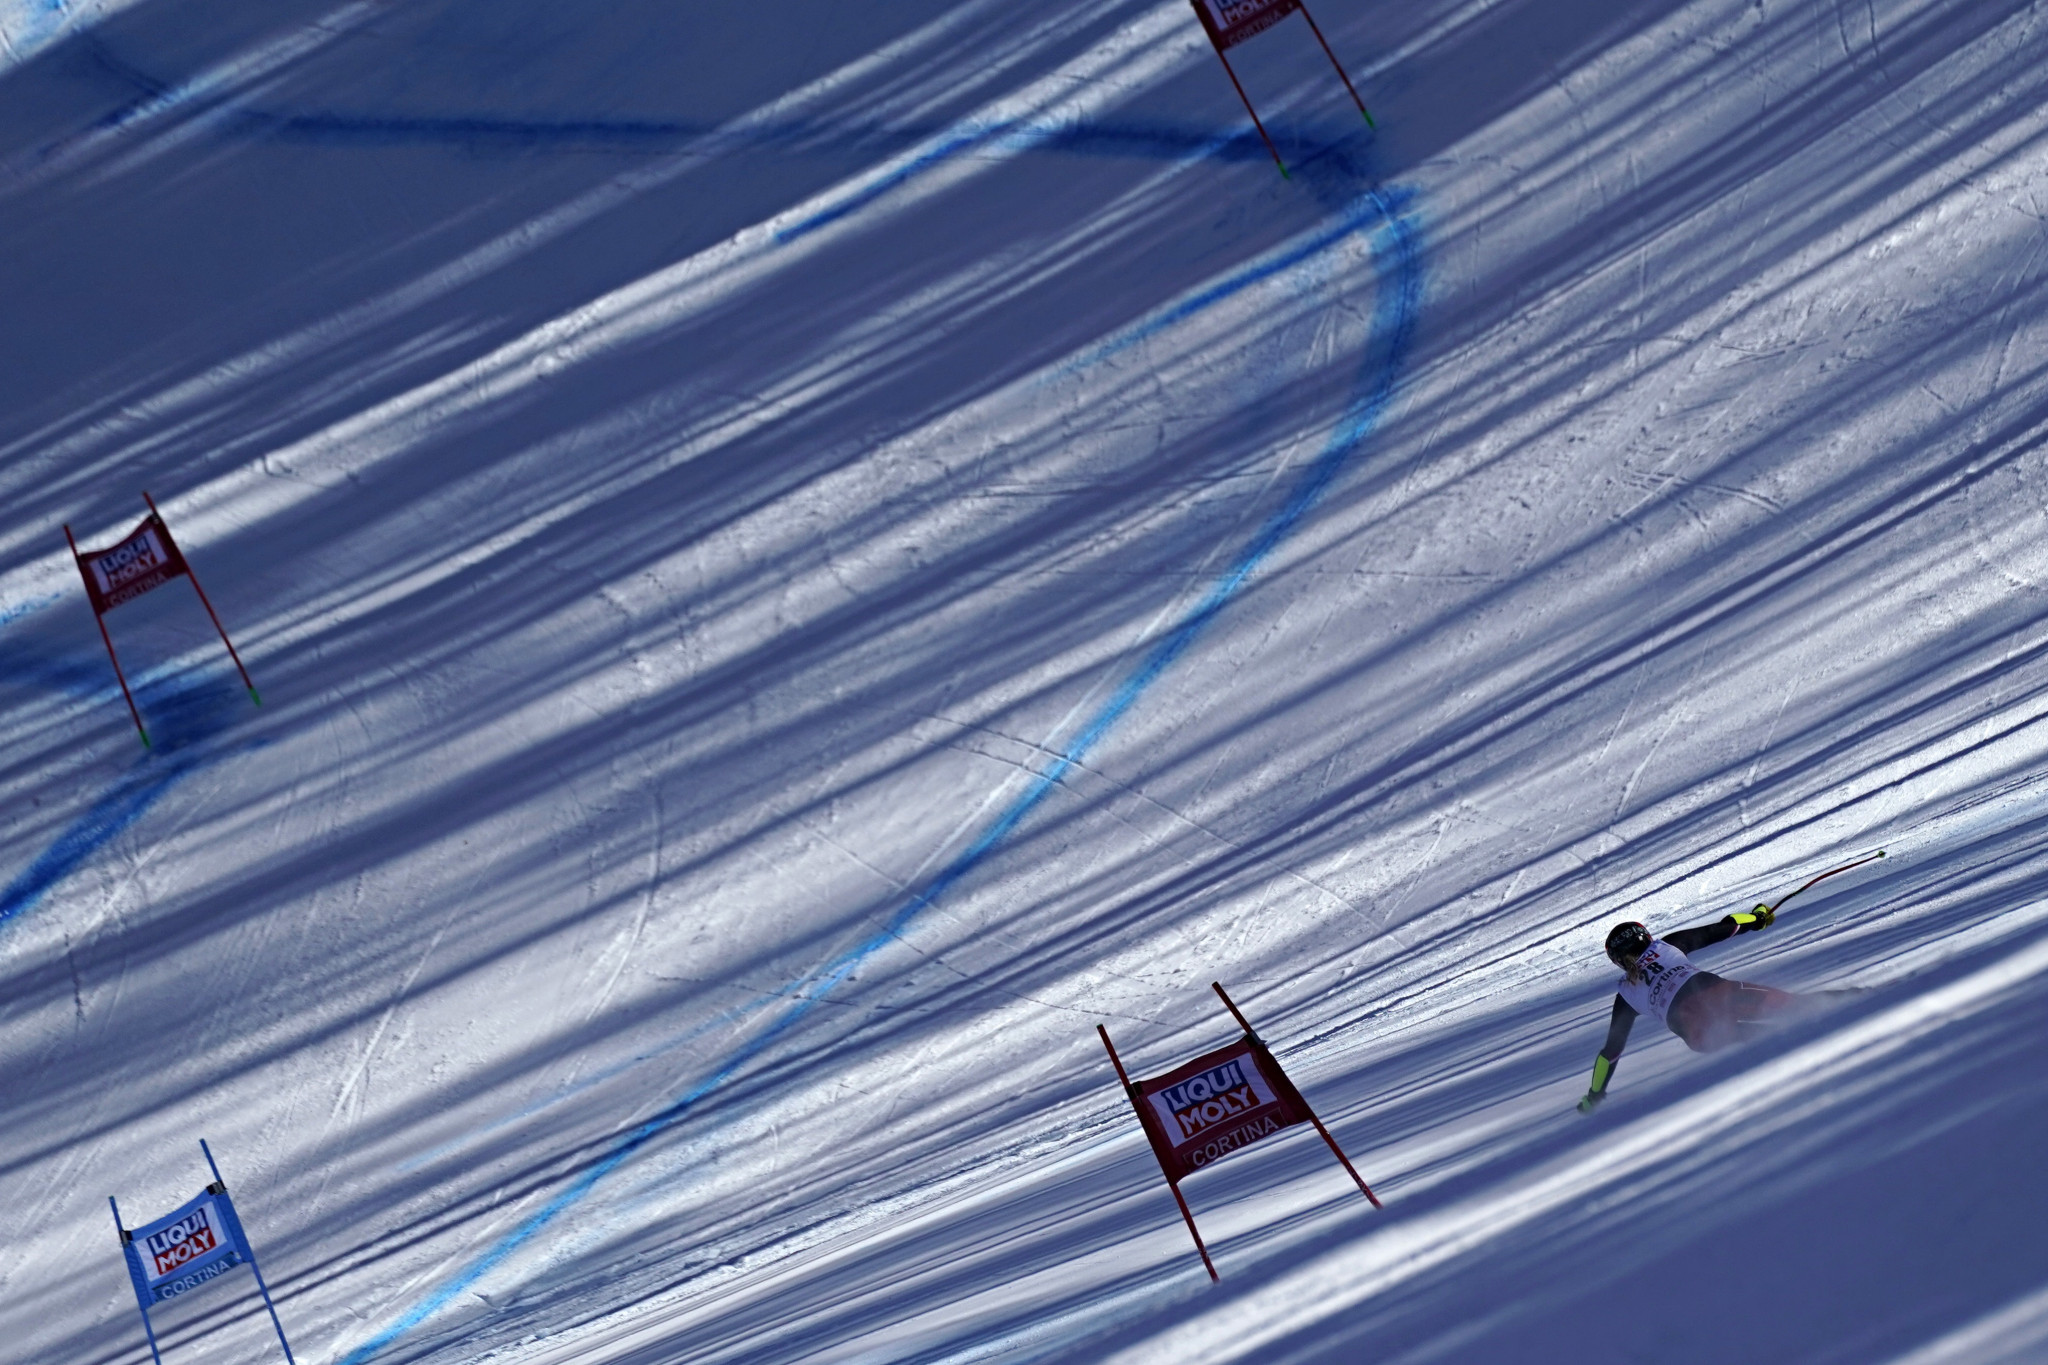 Organiser says Alpine World Ski Championships can aid preparations for Milan Cortina 2026